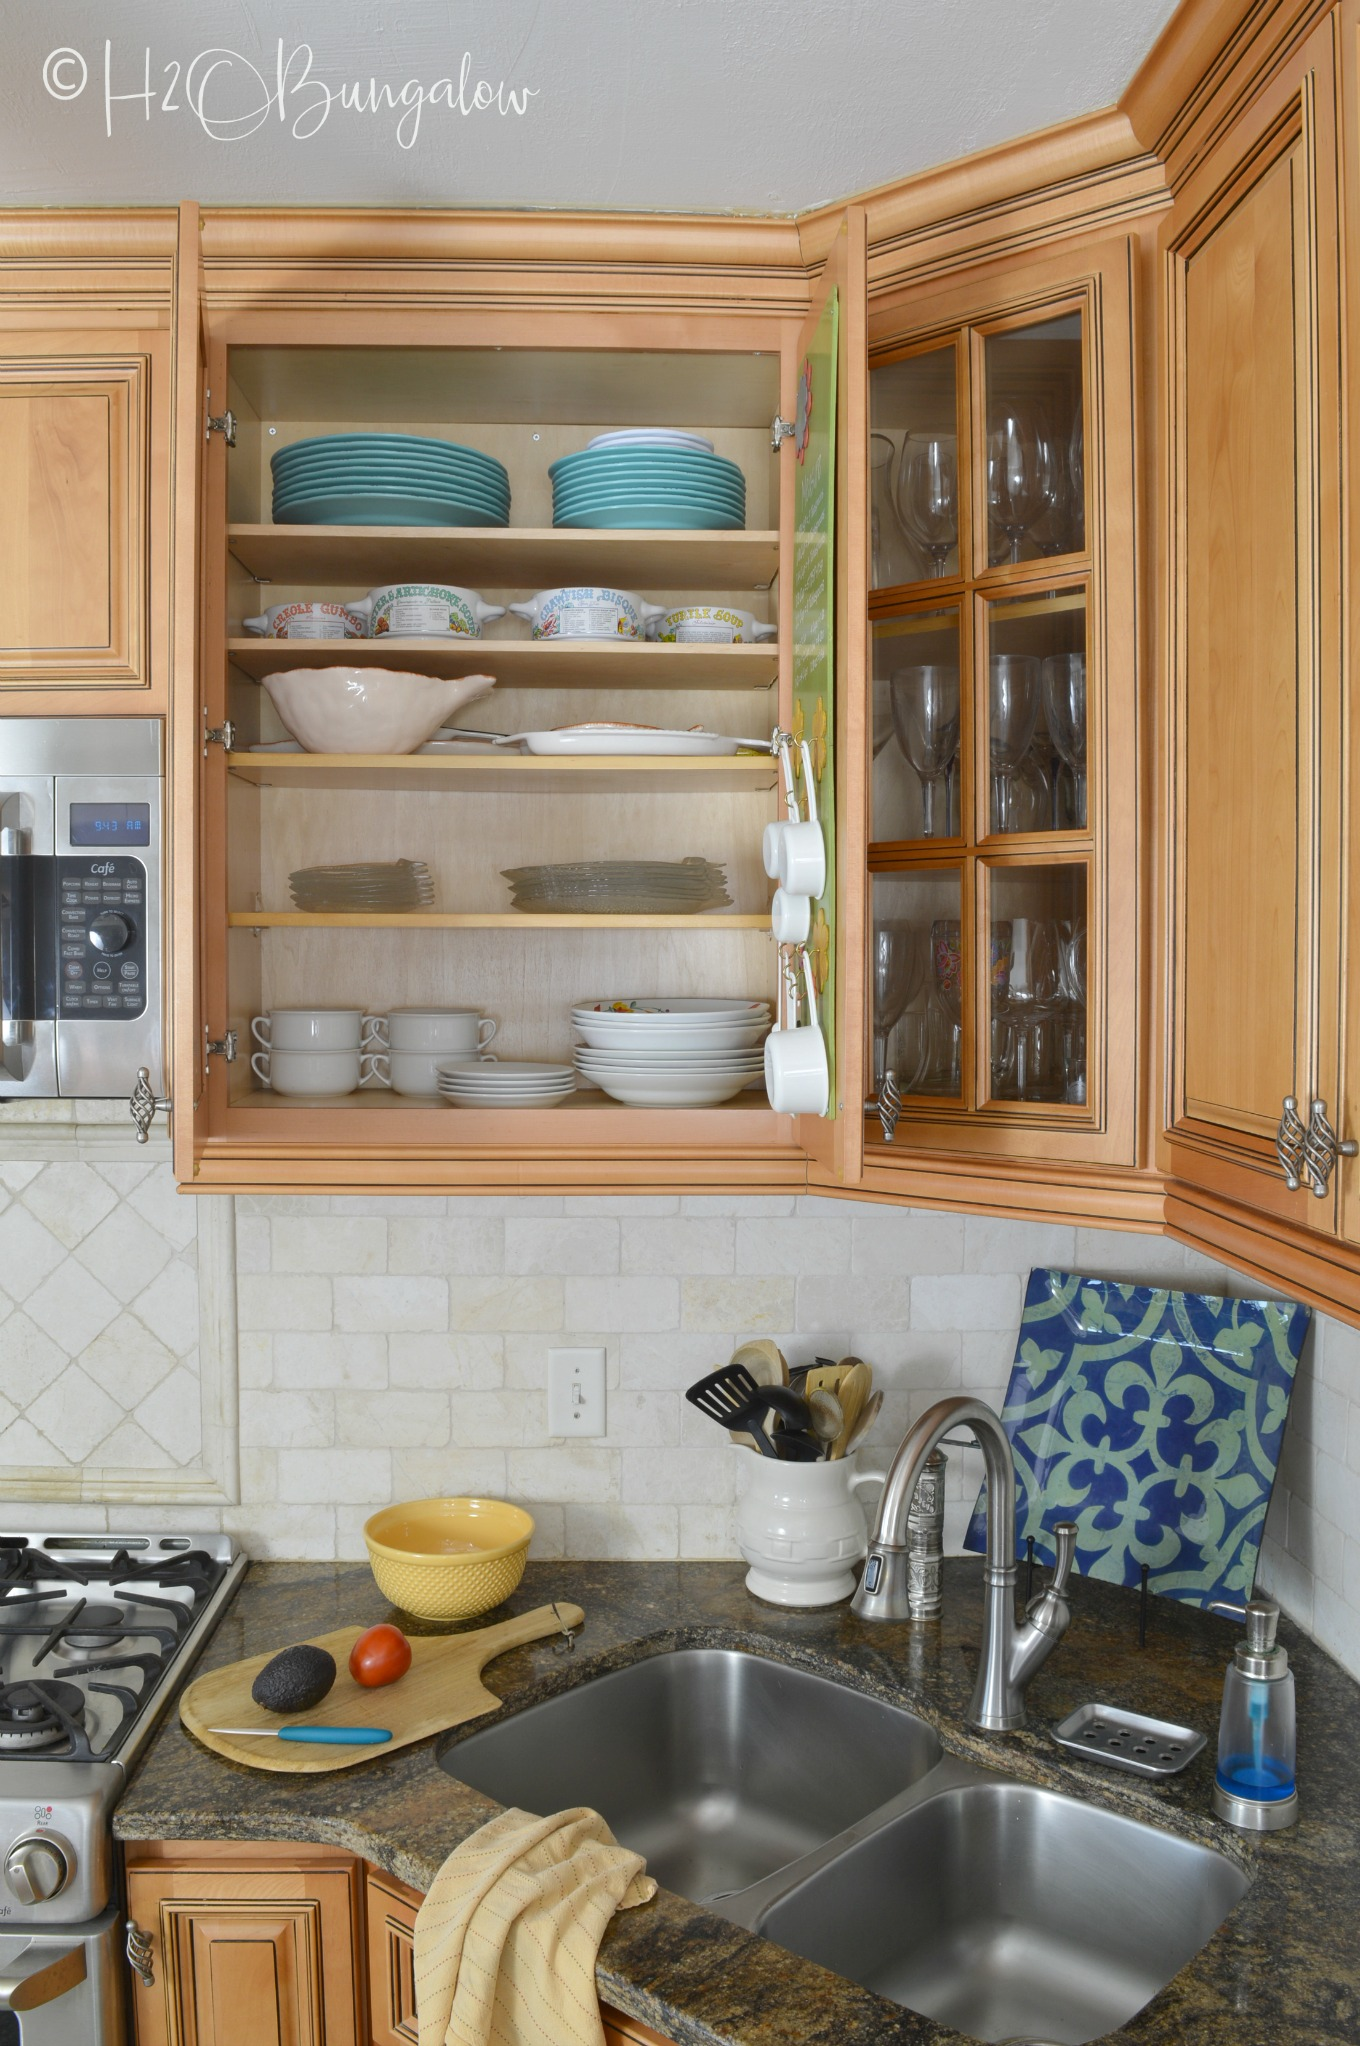 How To Add Extra Shelves To Kitchen Cabinets H20Bungalow